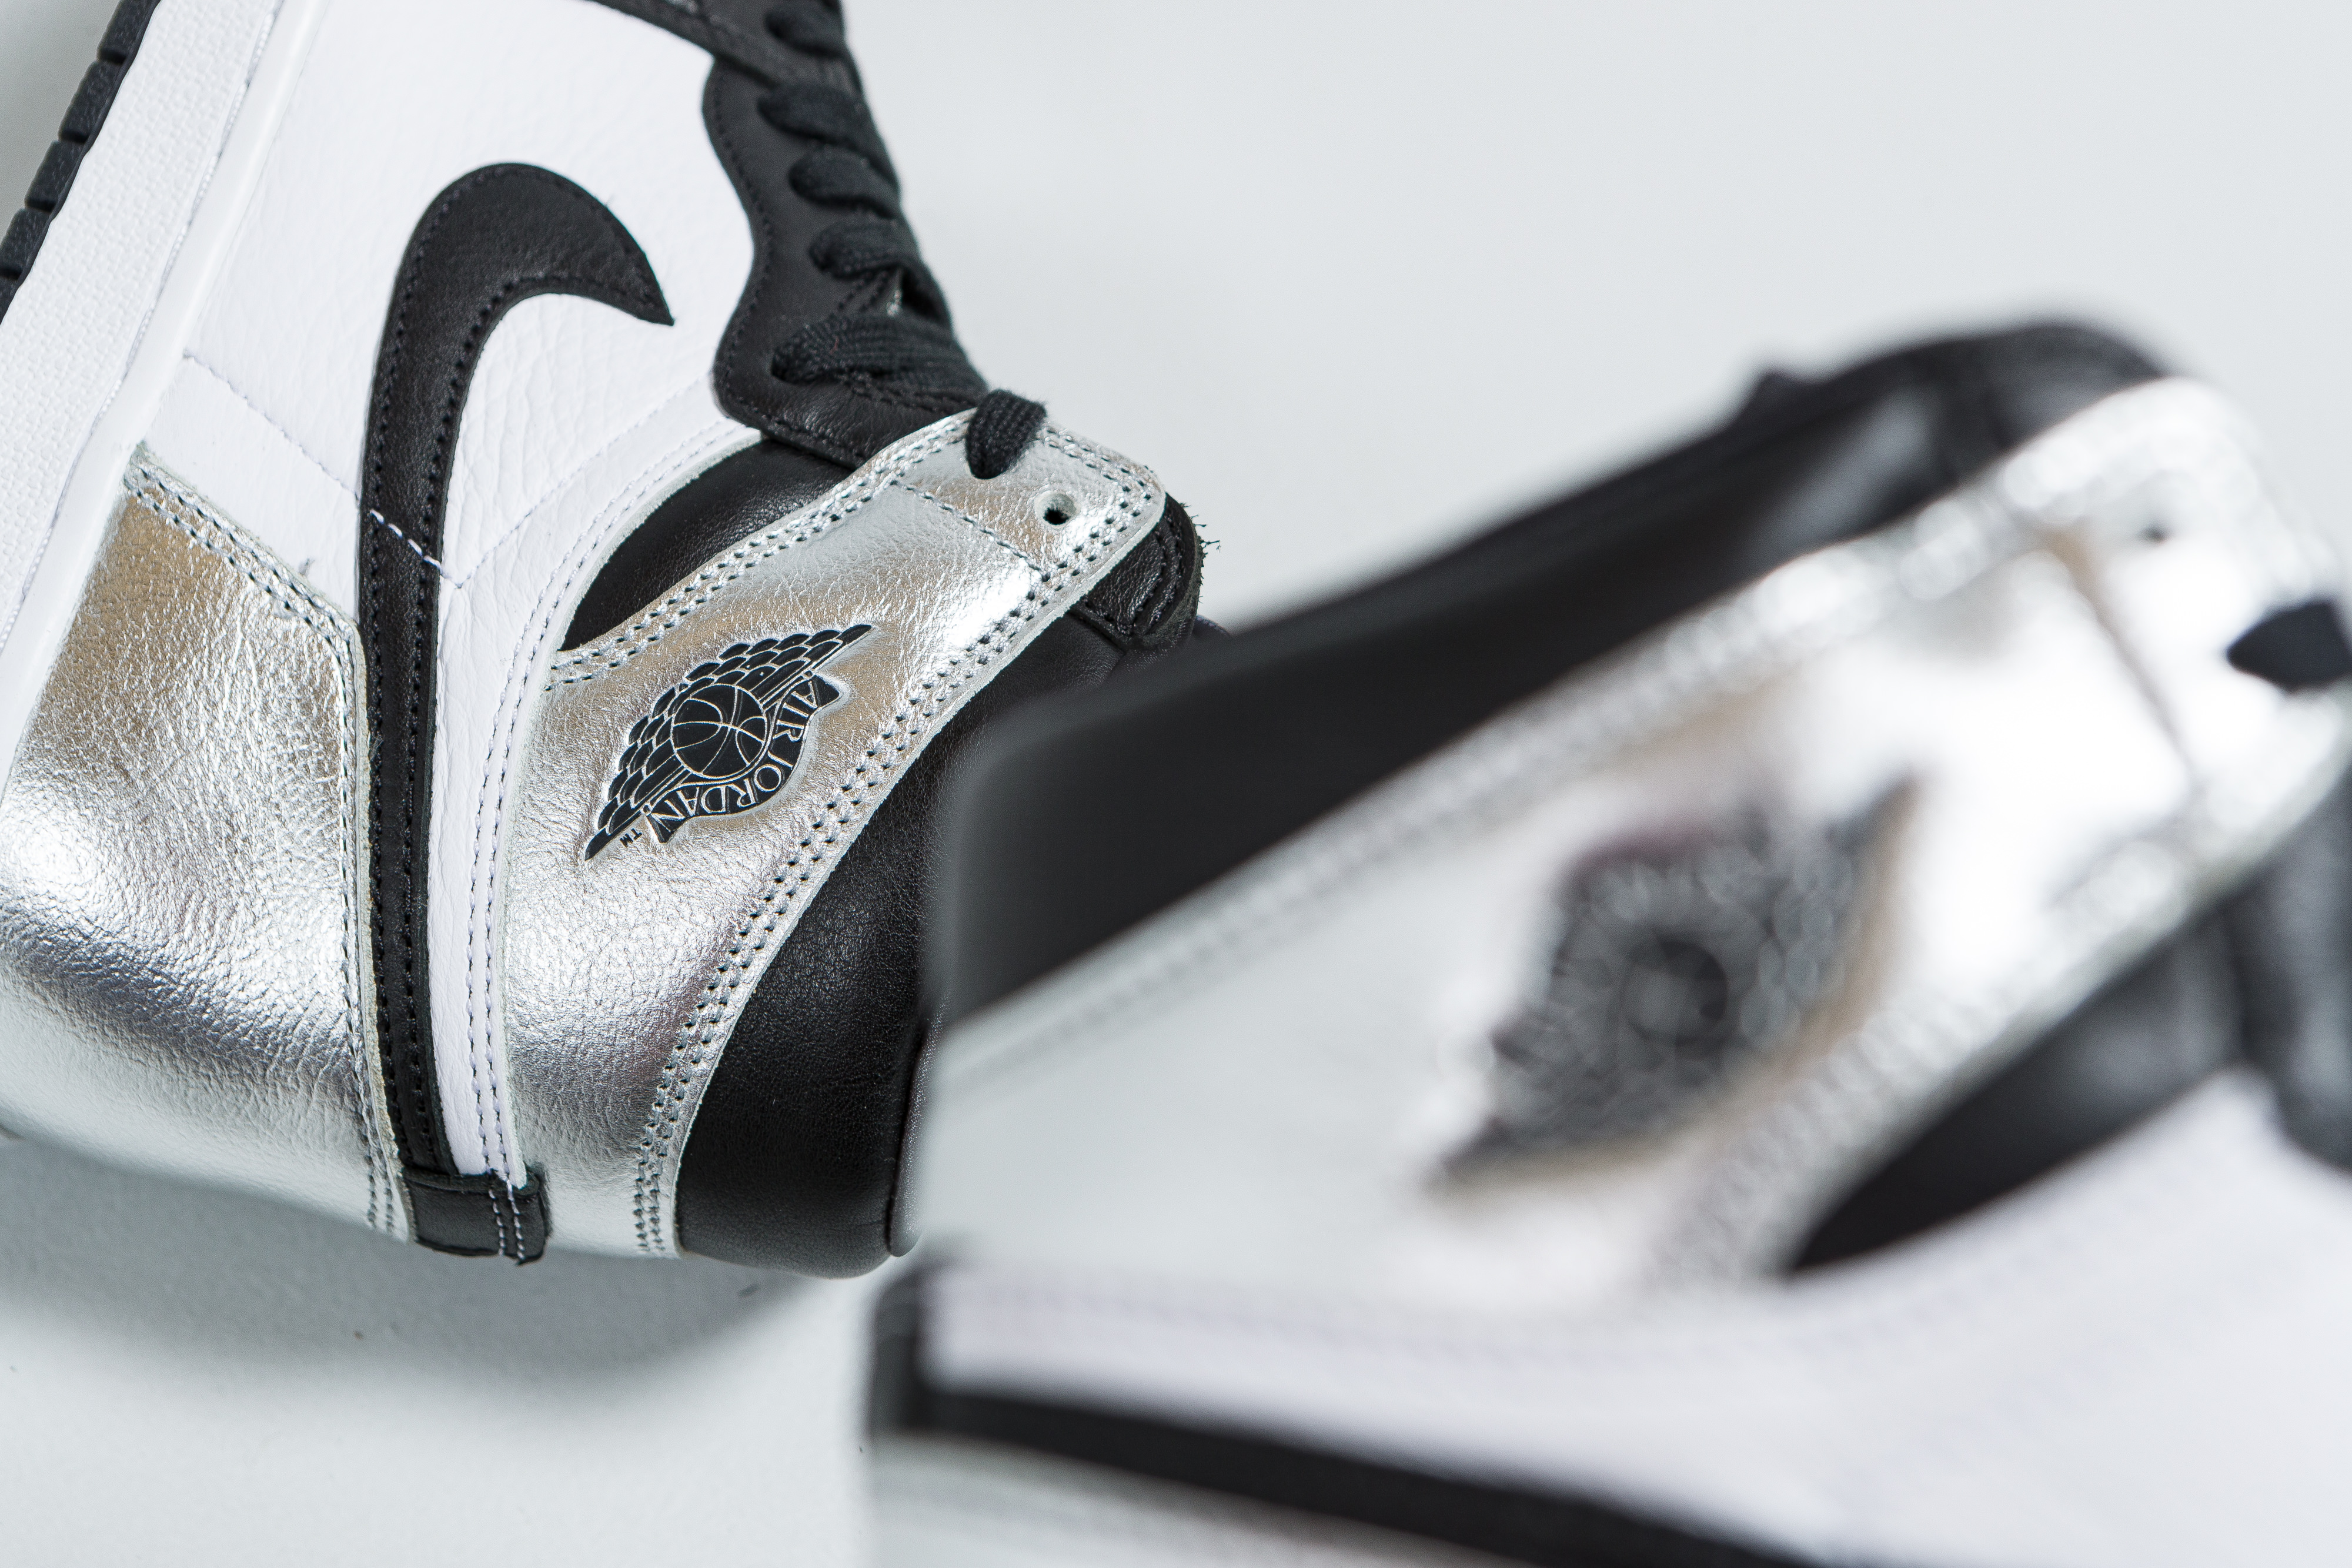 Up There Launches - Nike Air Jordan 1 Women's 'Silver Toe'